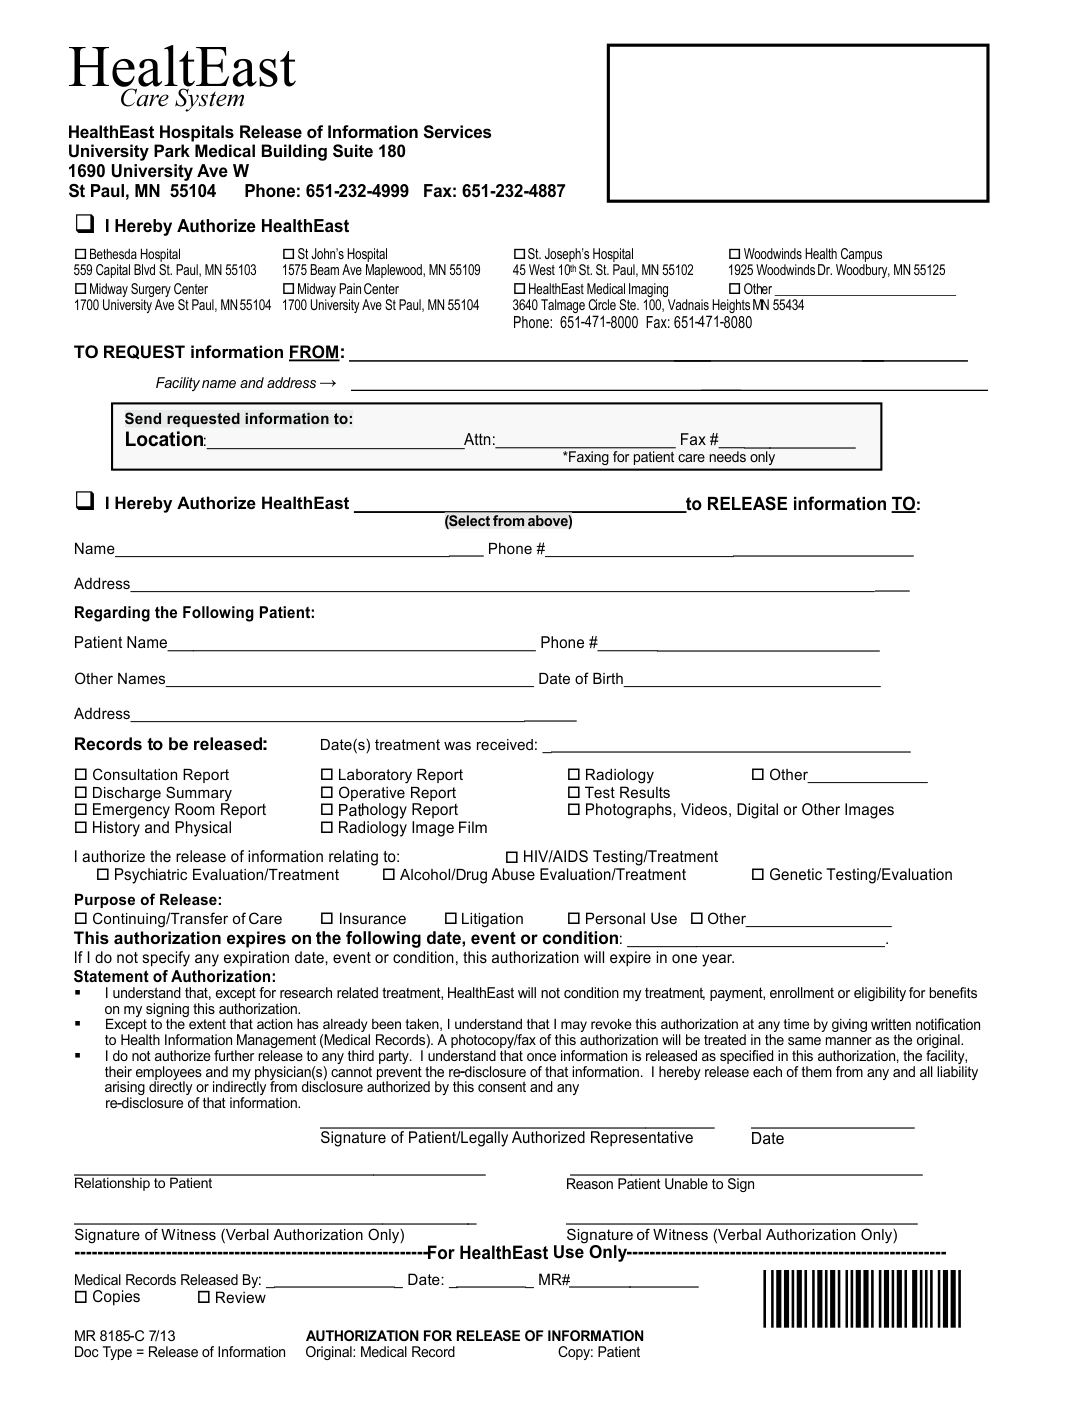 9 Best Images of Free Printable Hospital Discharge Forms Blank – Sample Against Medical Advice Form